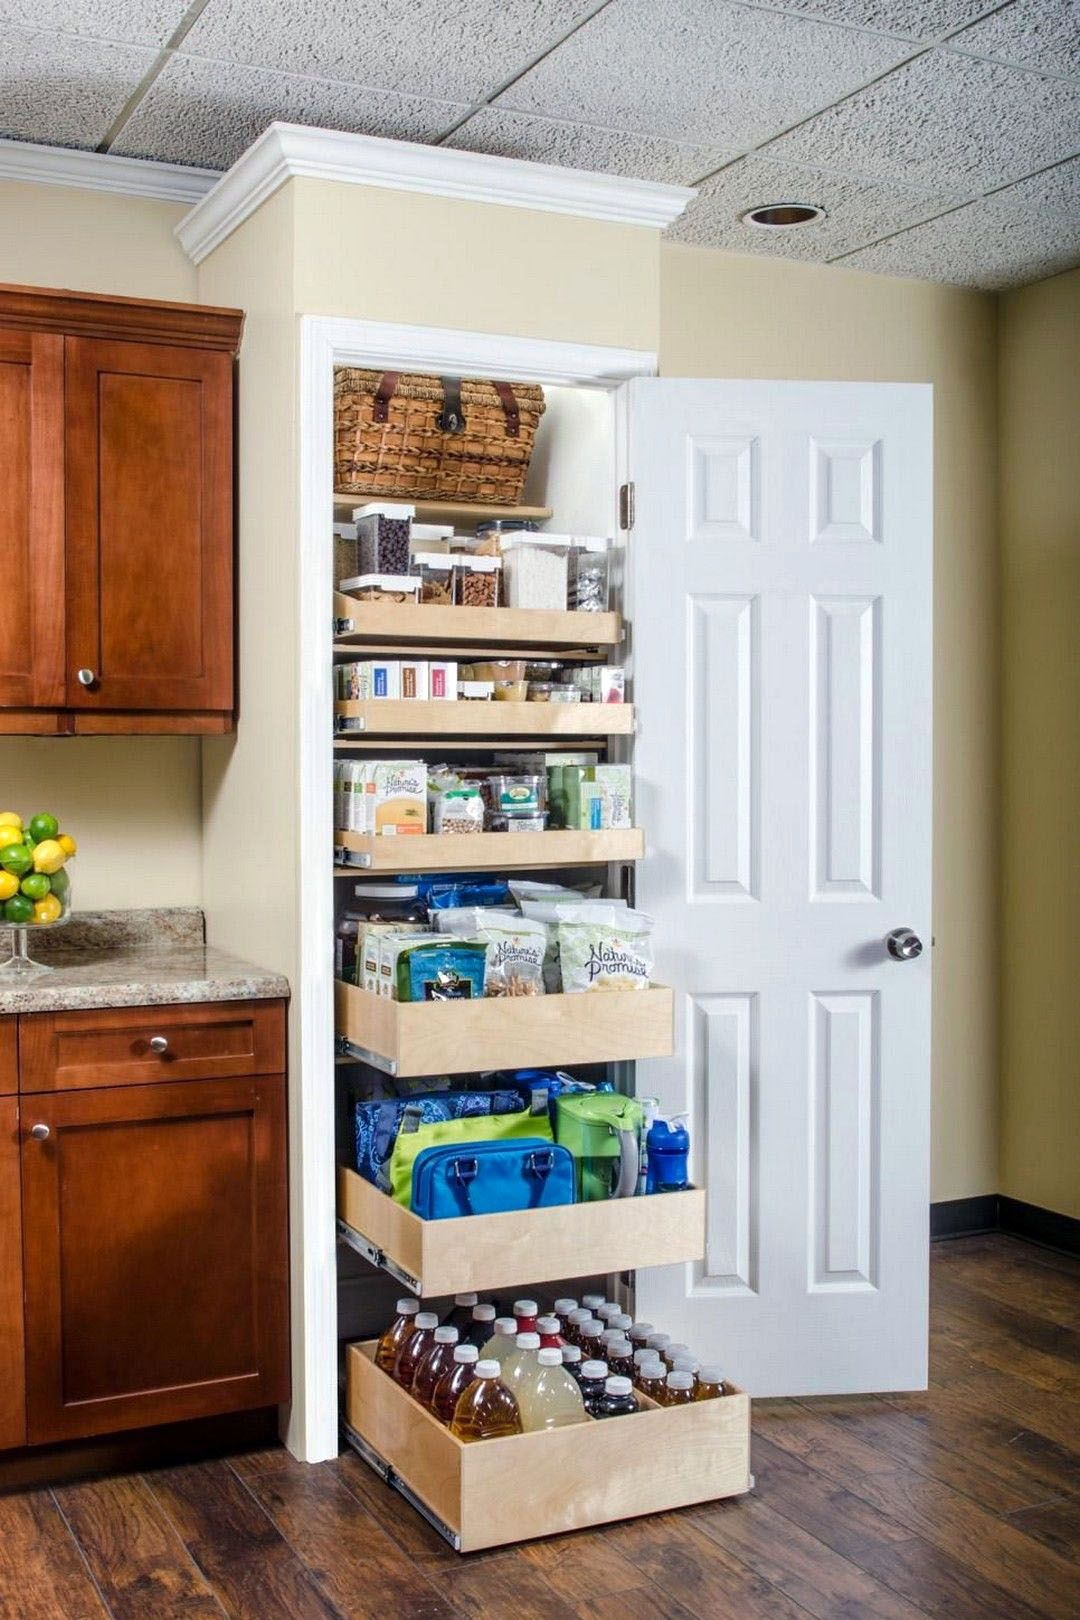 Smal Kitchen Ideas To Transform Your Portable Room Into A Smart Super Organised Space Pantry Design Diy Kitchen Storage Pantry Organizers